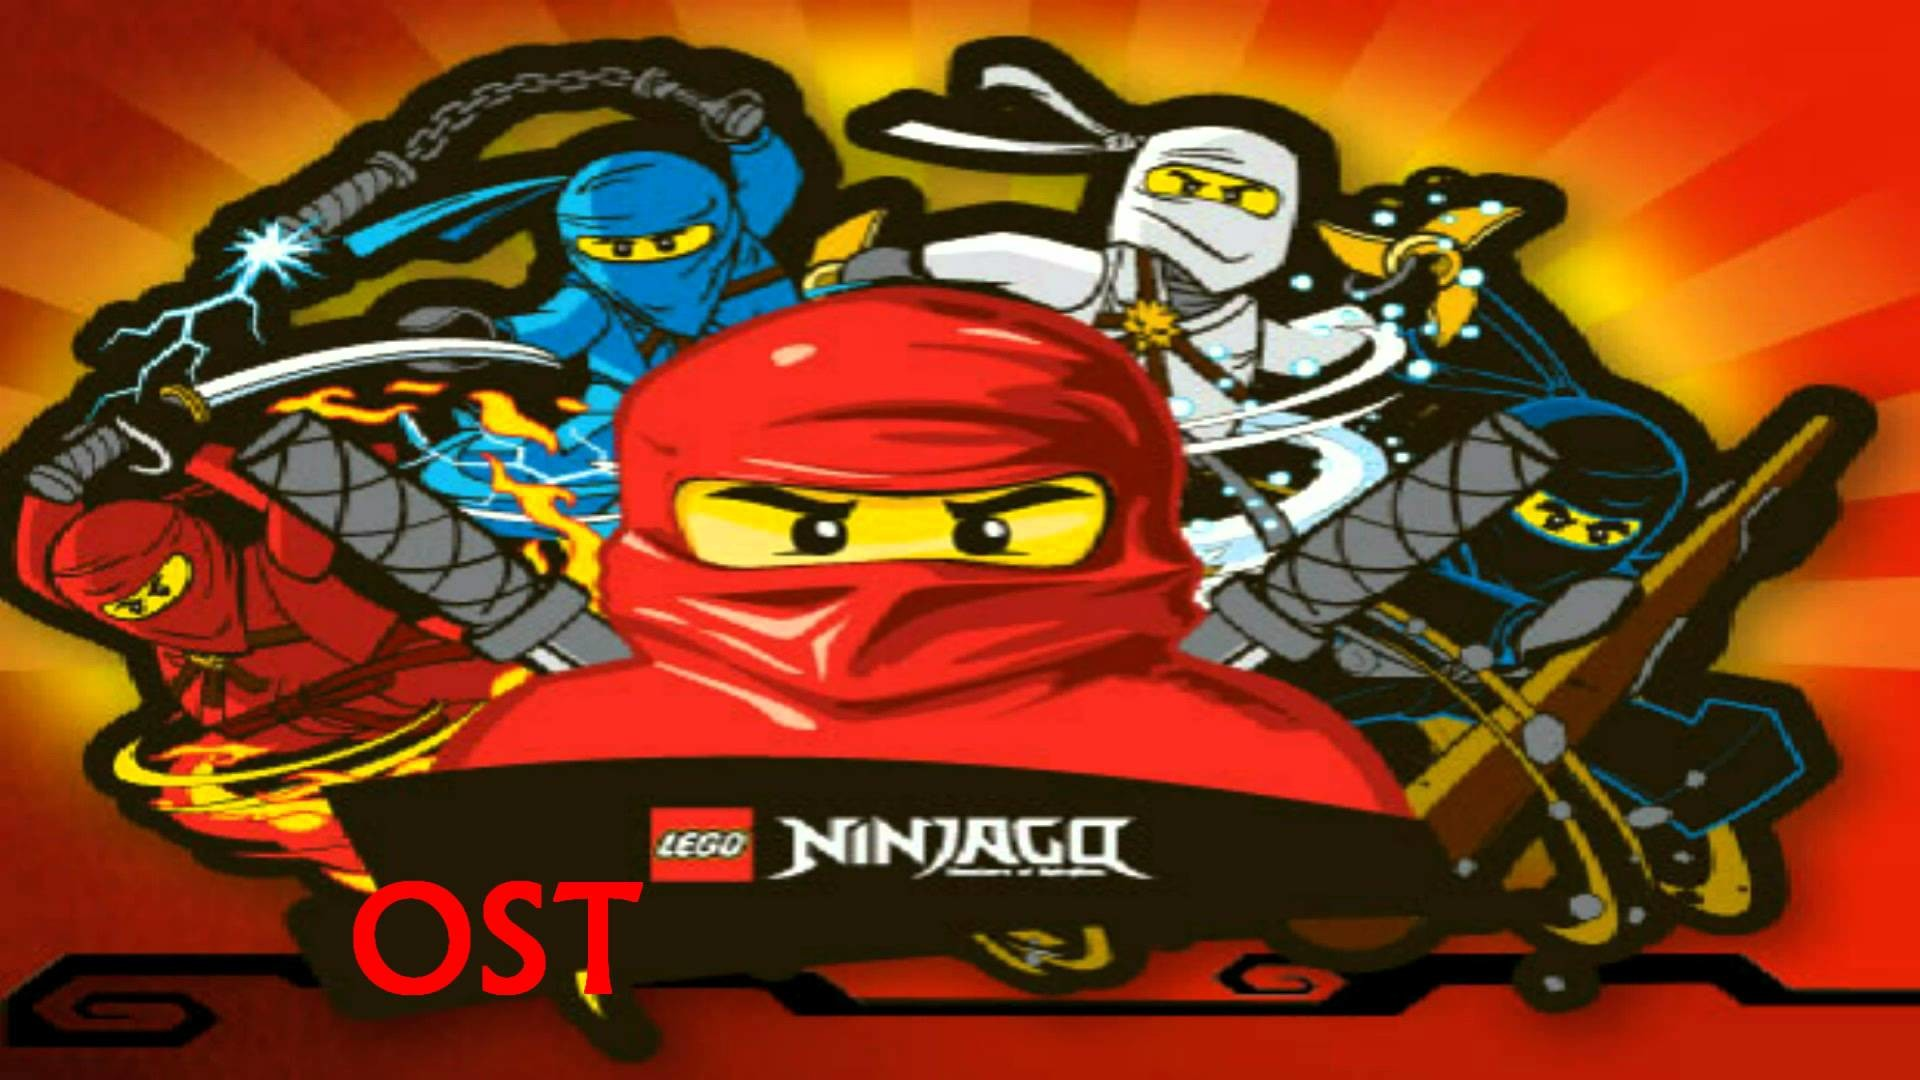 Ninjago HD Wallpaper (71+ images)